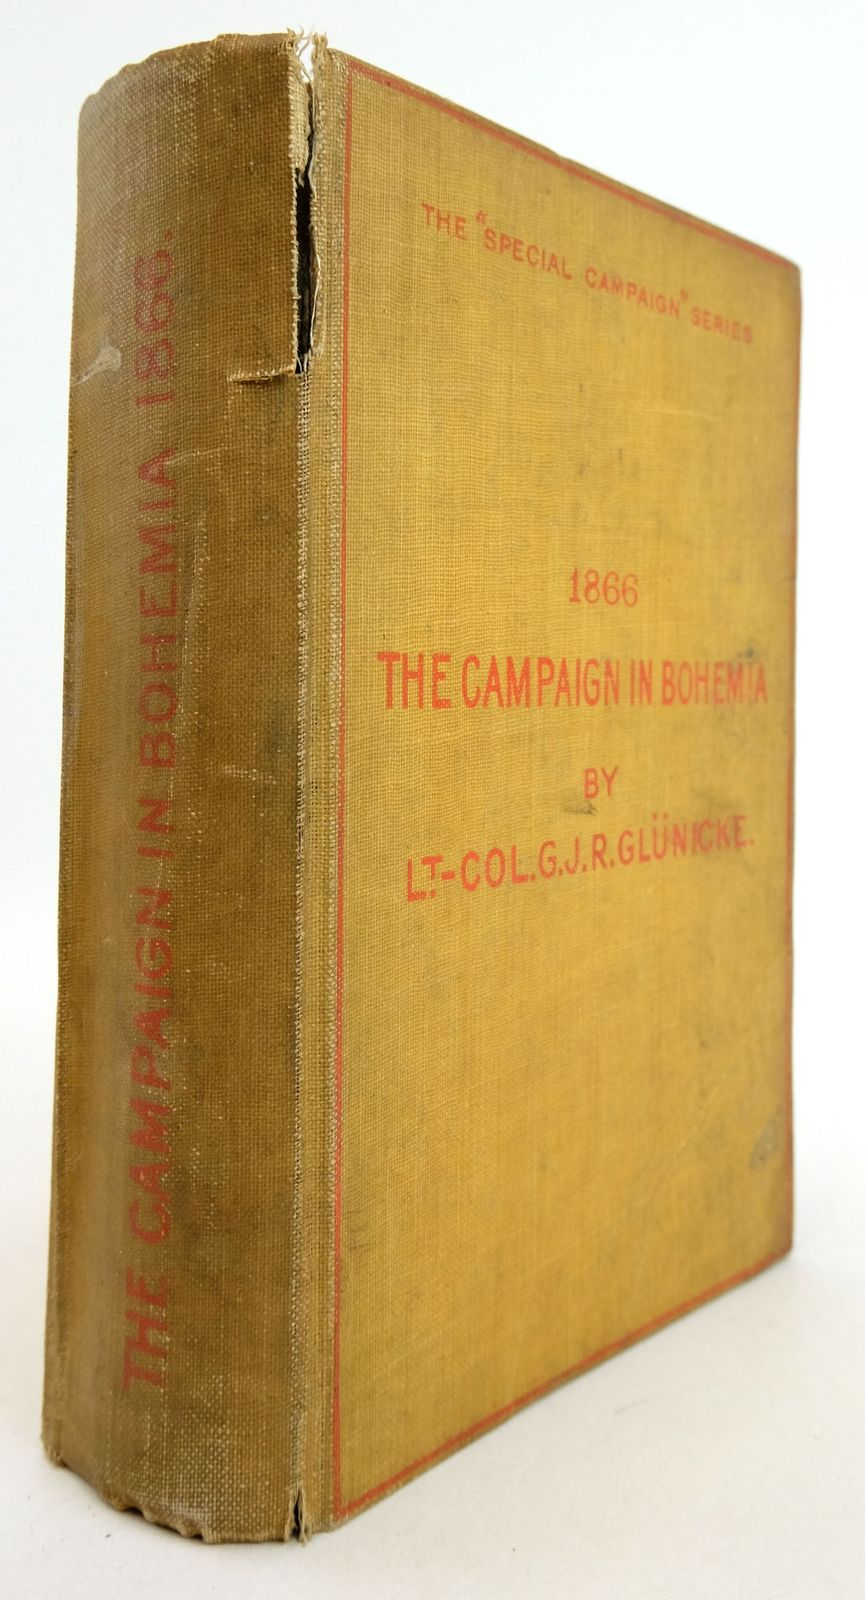 Photo of THE CAMPAIGN IN BOHEMIA 1866 written by Glunicke, G.J.R. published by Swan Sonnenschein & Co. (STOCK CODE: 1819531)  for sale by Stella & Rose's Books